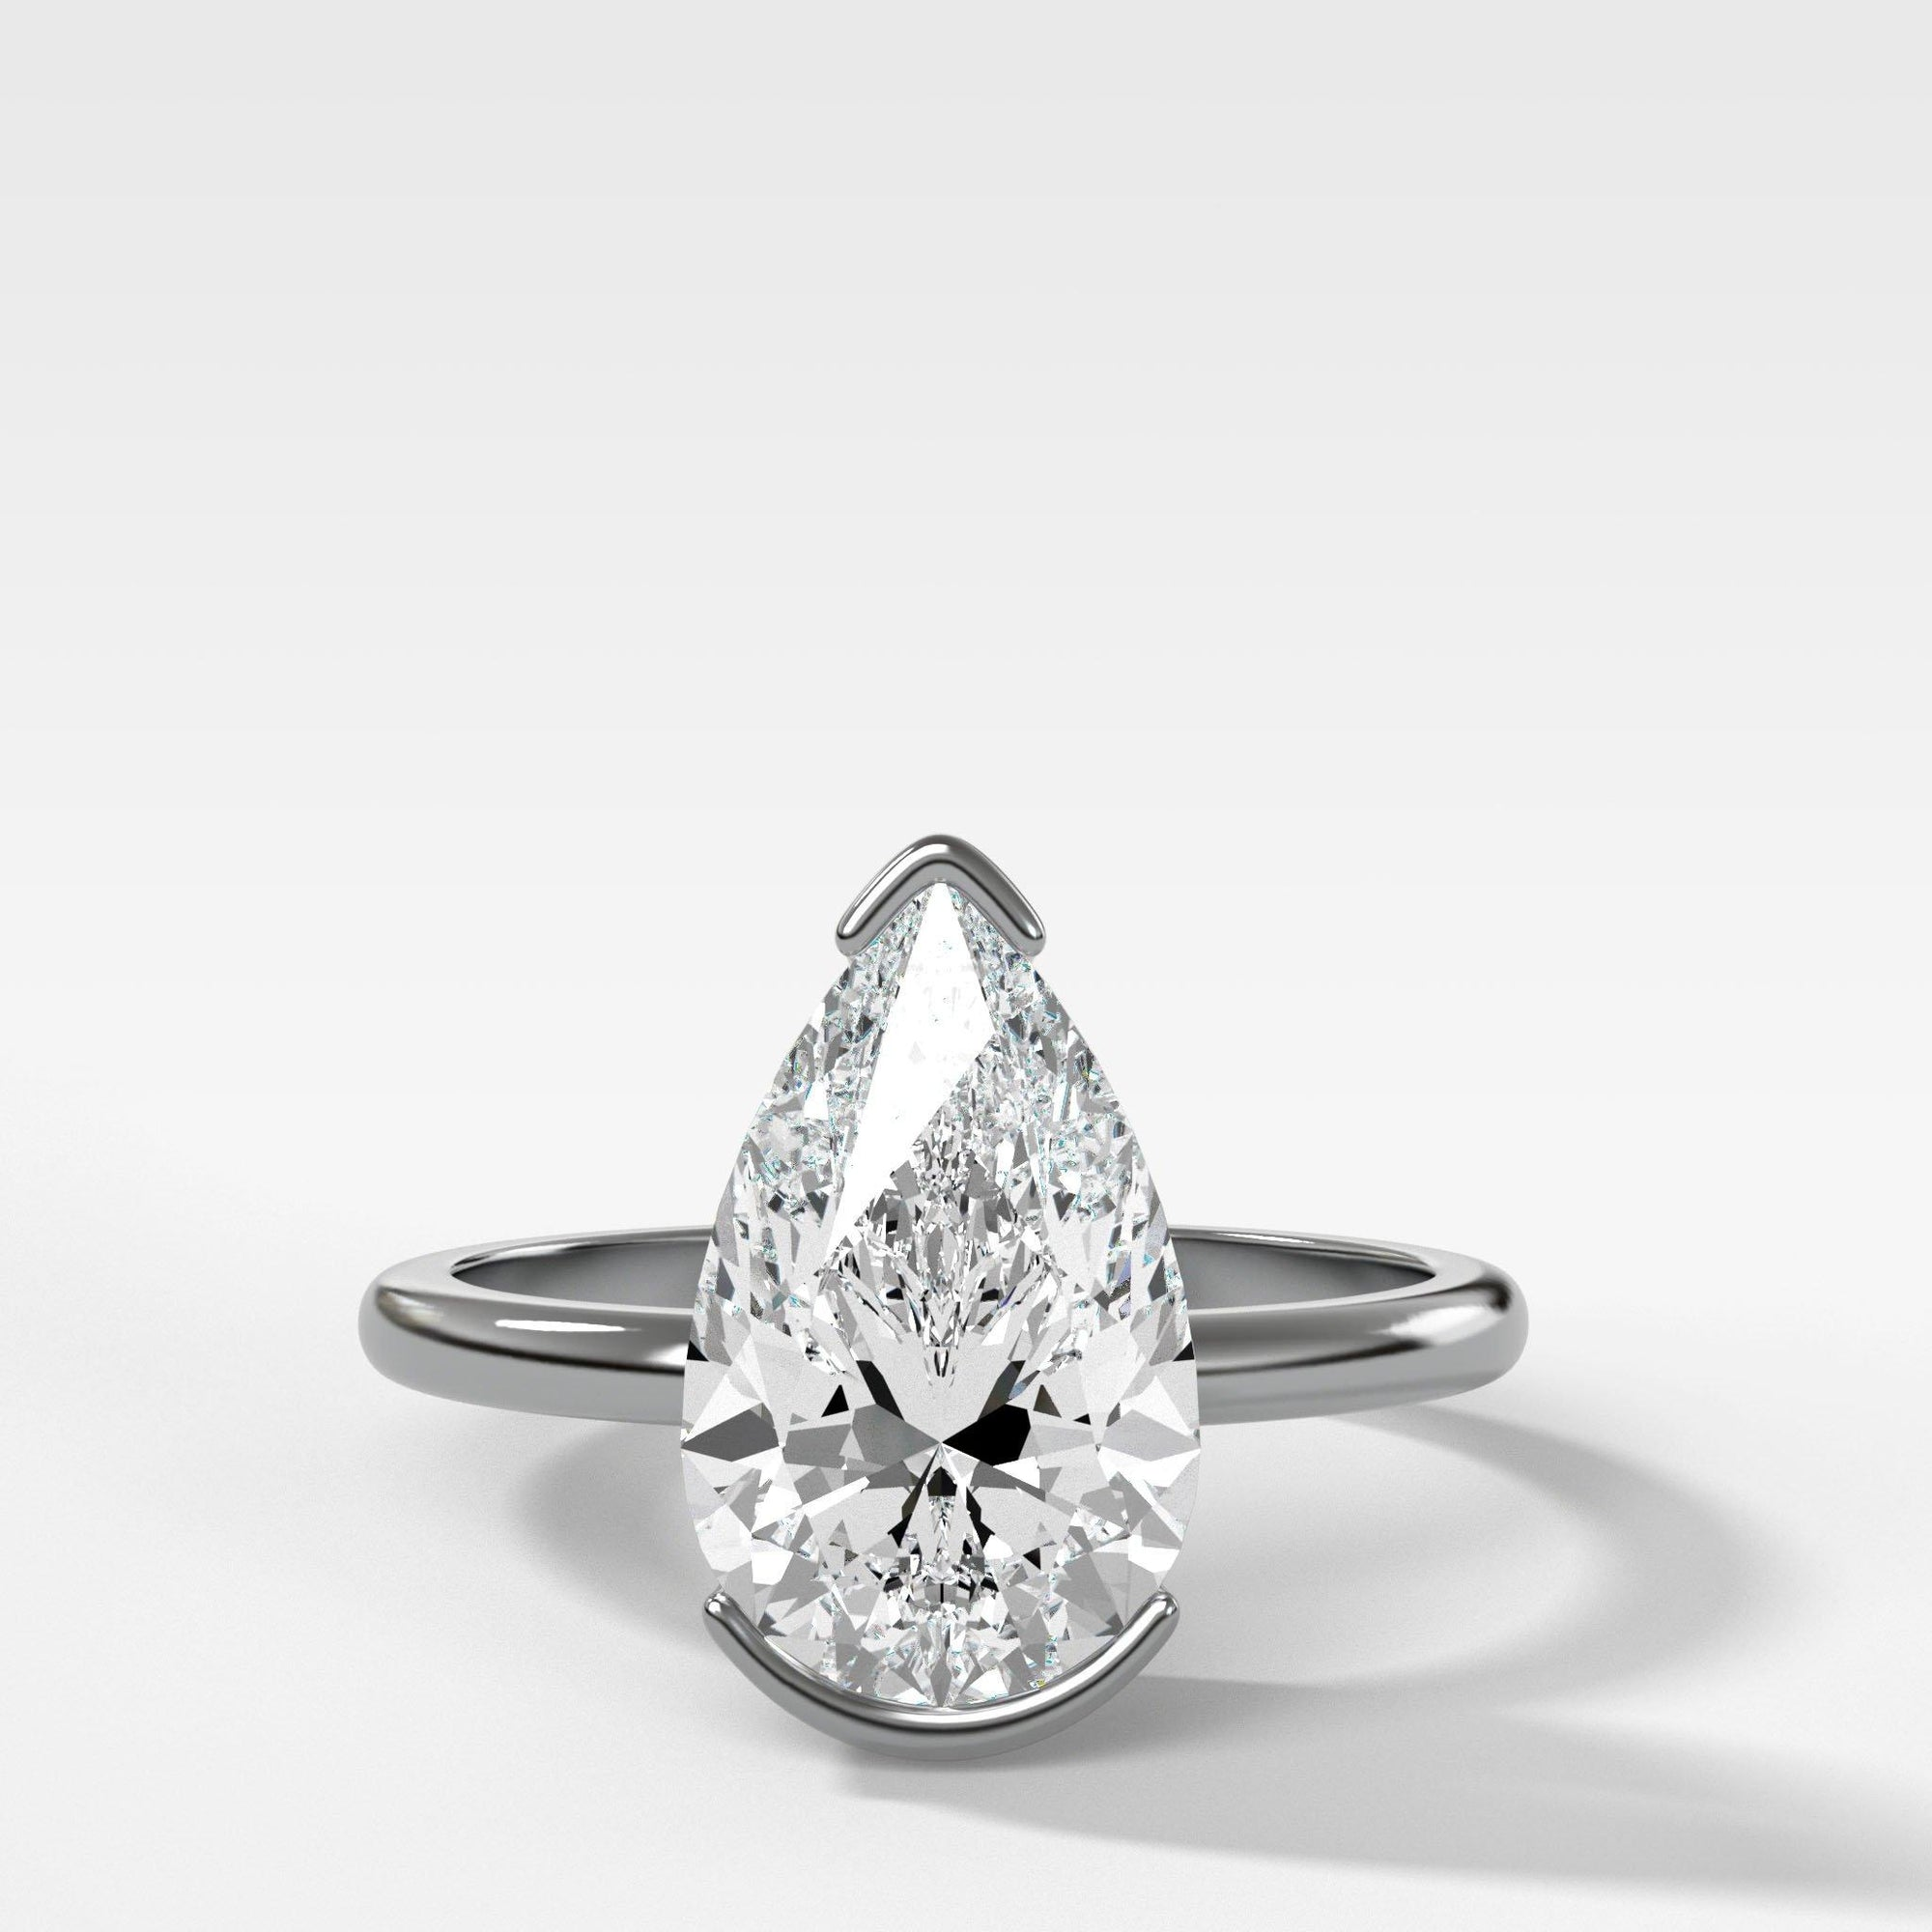 North South Half Bezel Solitaire Engagement Ring With Pear Cut in Yellow Gold by Good Stone